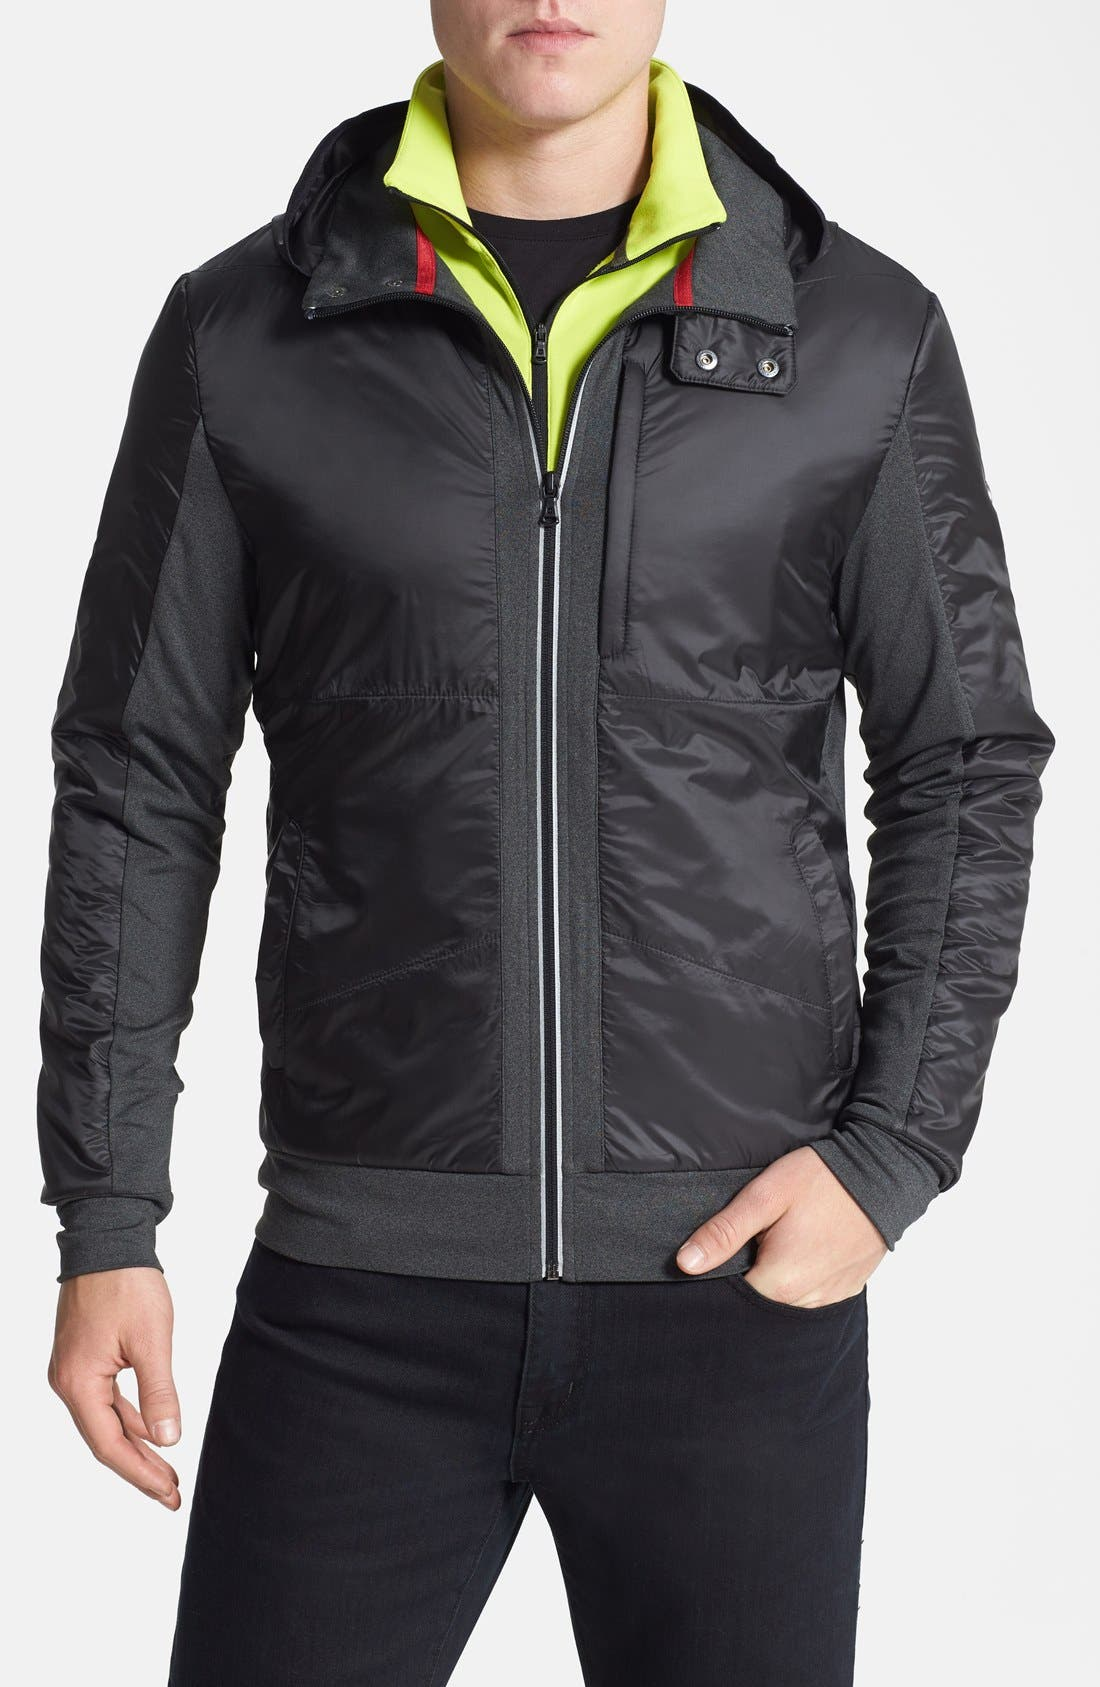 Alternate Image 1 Selected - Victorinox Swiss Army® Moisture Wicking Technical Fleece Hooded Jacket (Online Only)